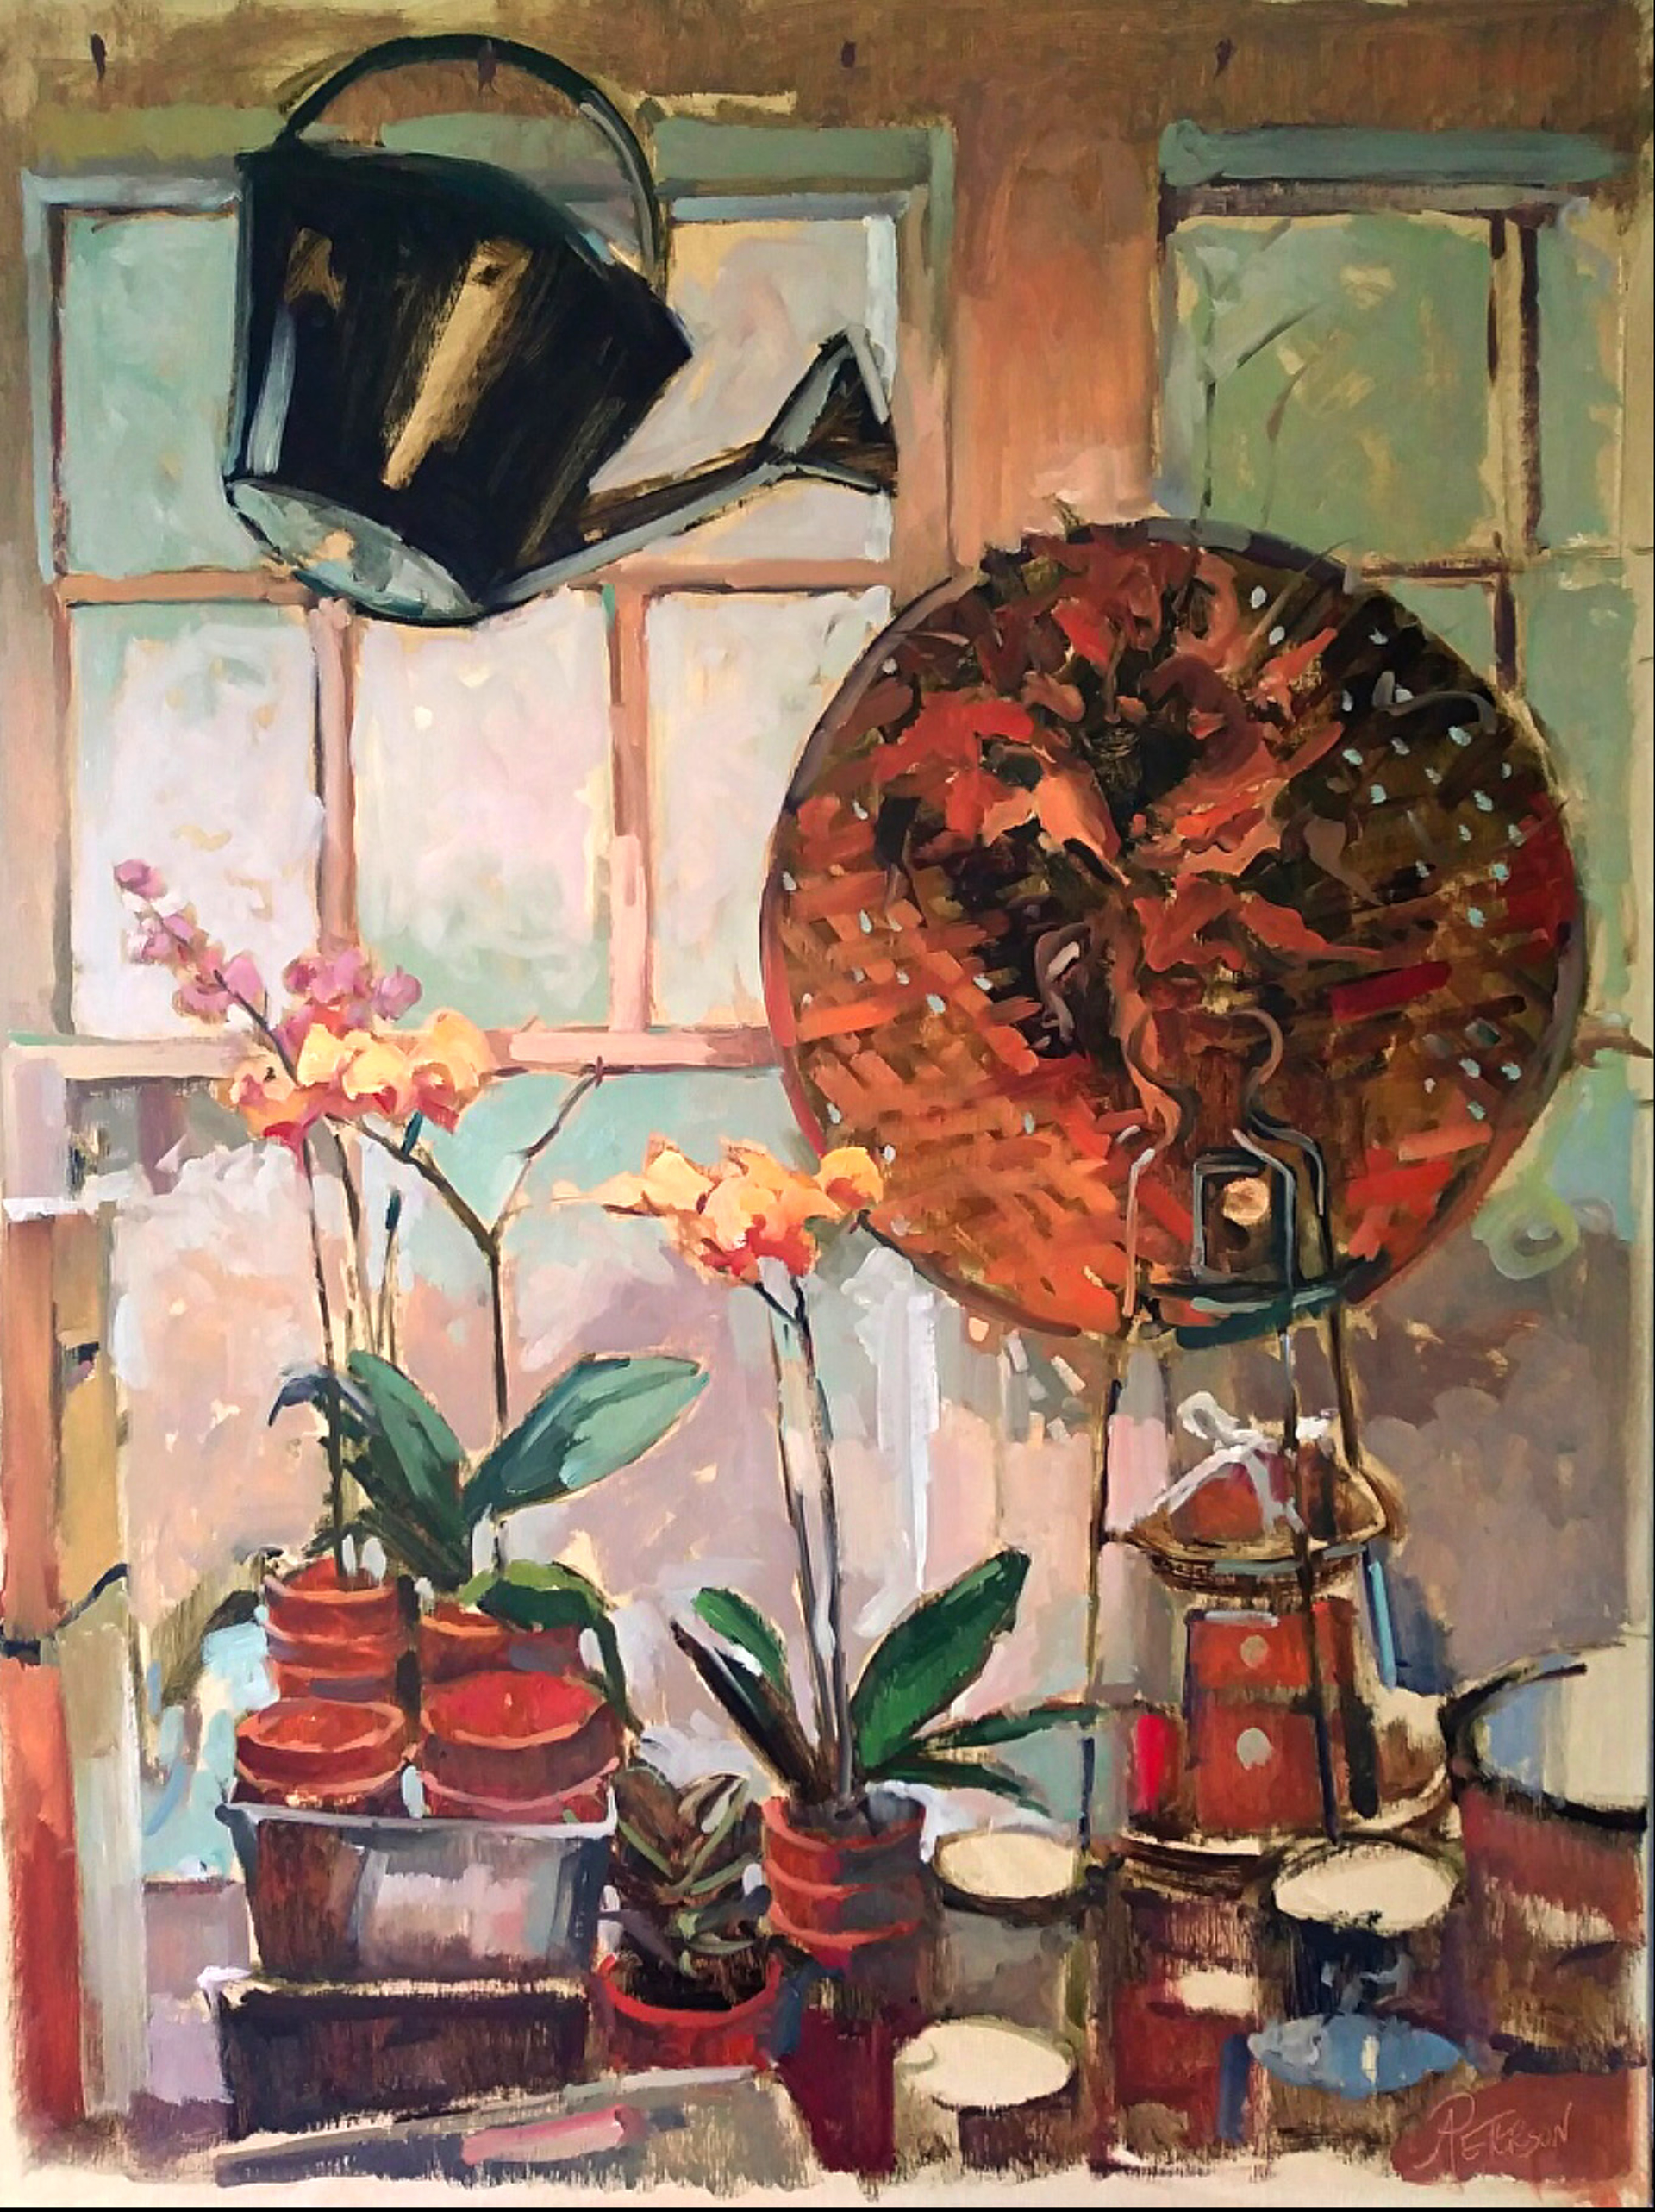 Garden Window I by Amy R. Peterson